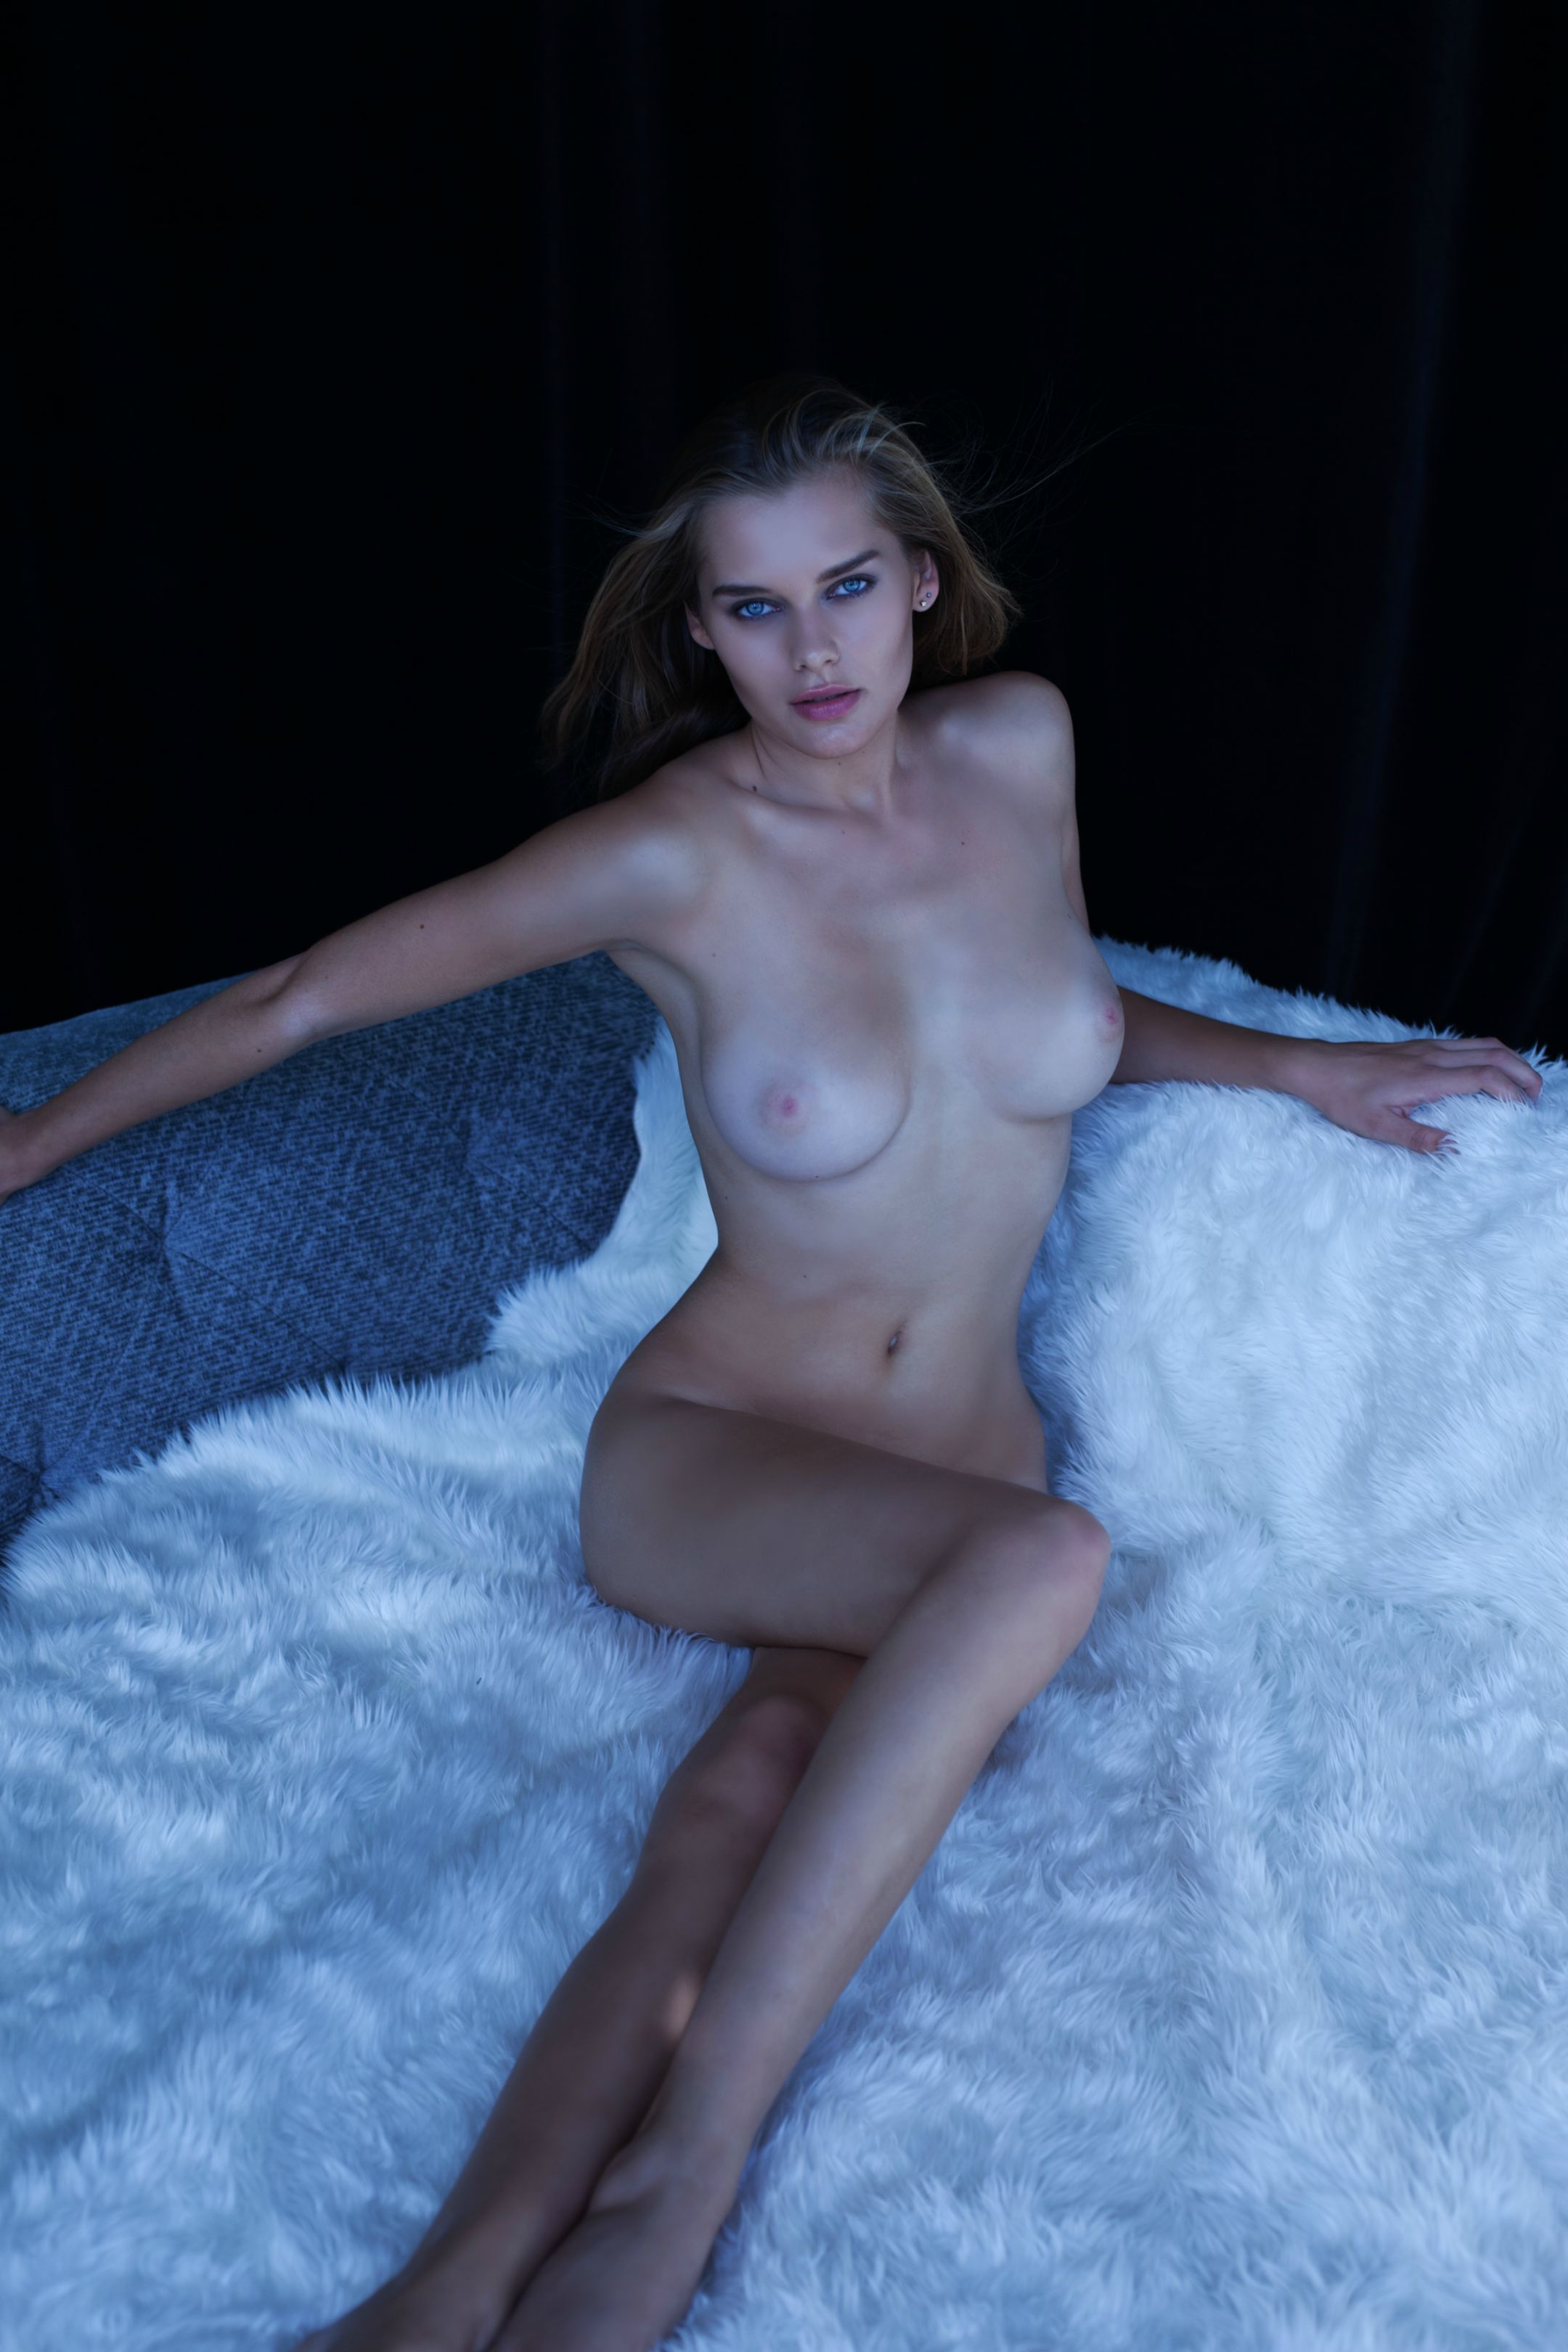 Sideboobs Sex Solveig Mork Hansen naked photo 2017